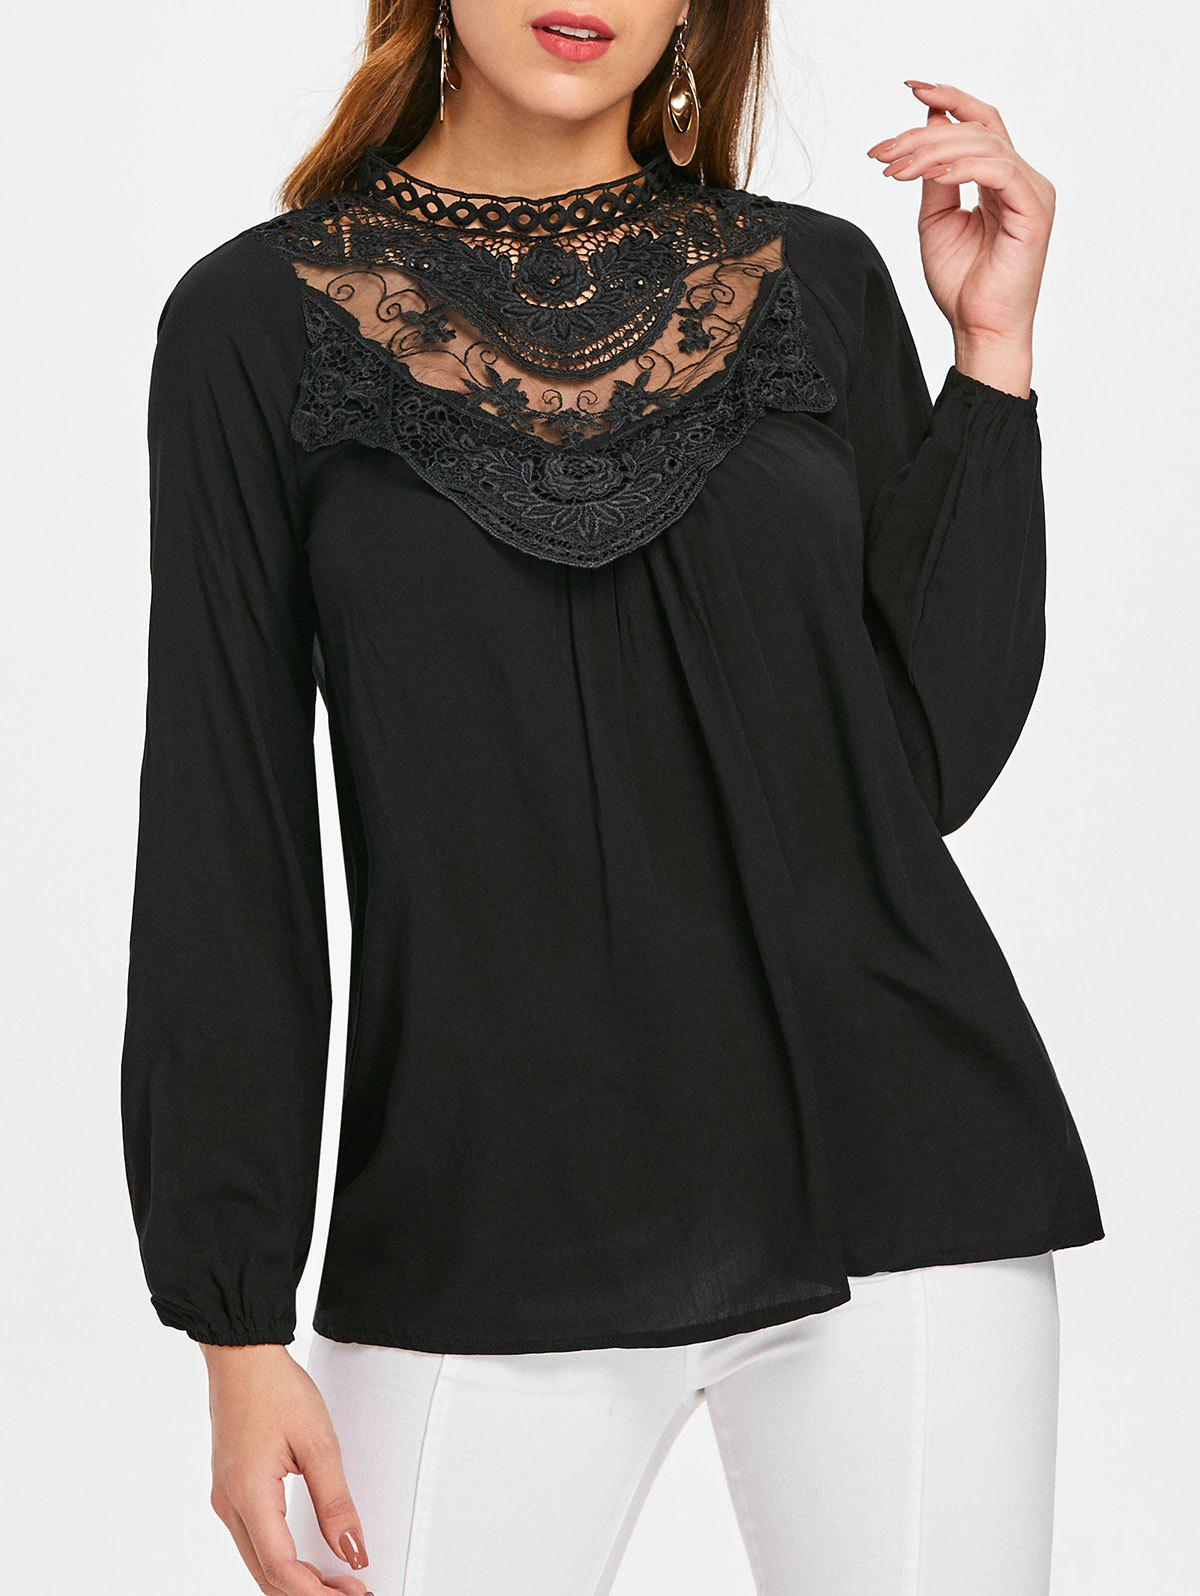 Hot Lace Crochet Long Sleeve Top